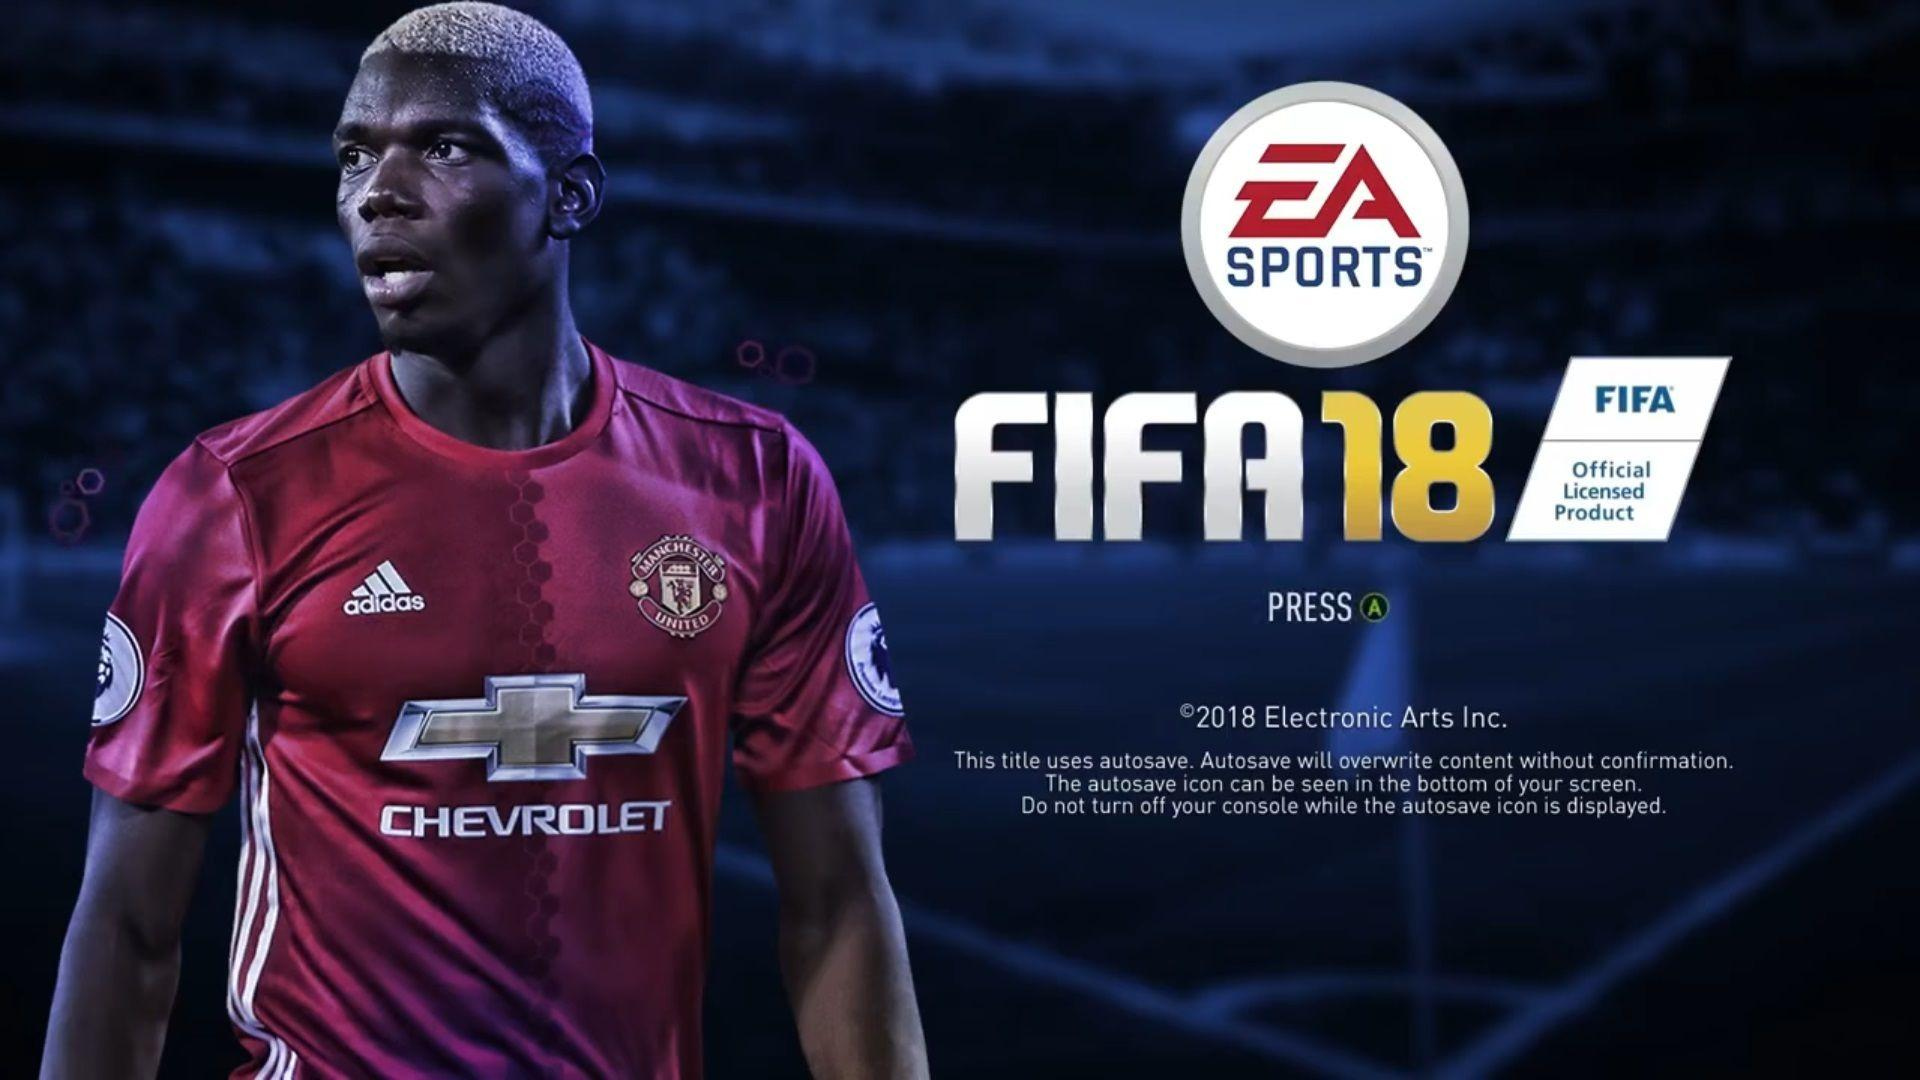 Download FIFA 18 HD Wallpapers 1920x1080